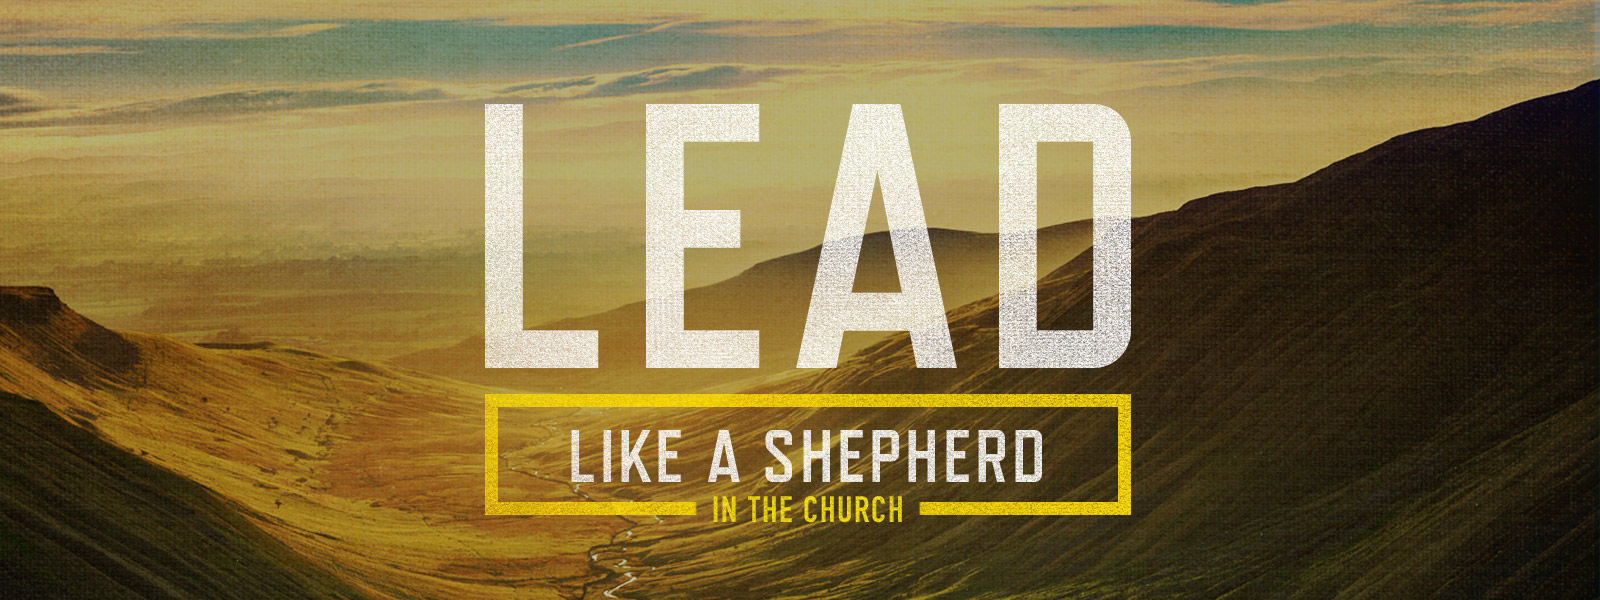 Lead Like A Shepherd in the Church